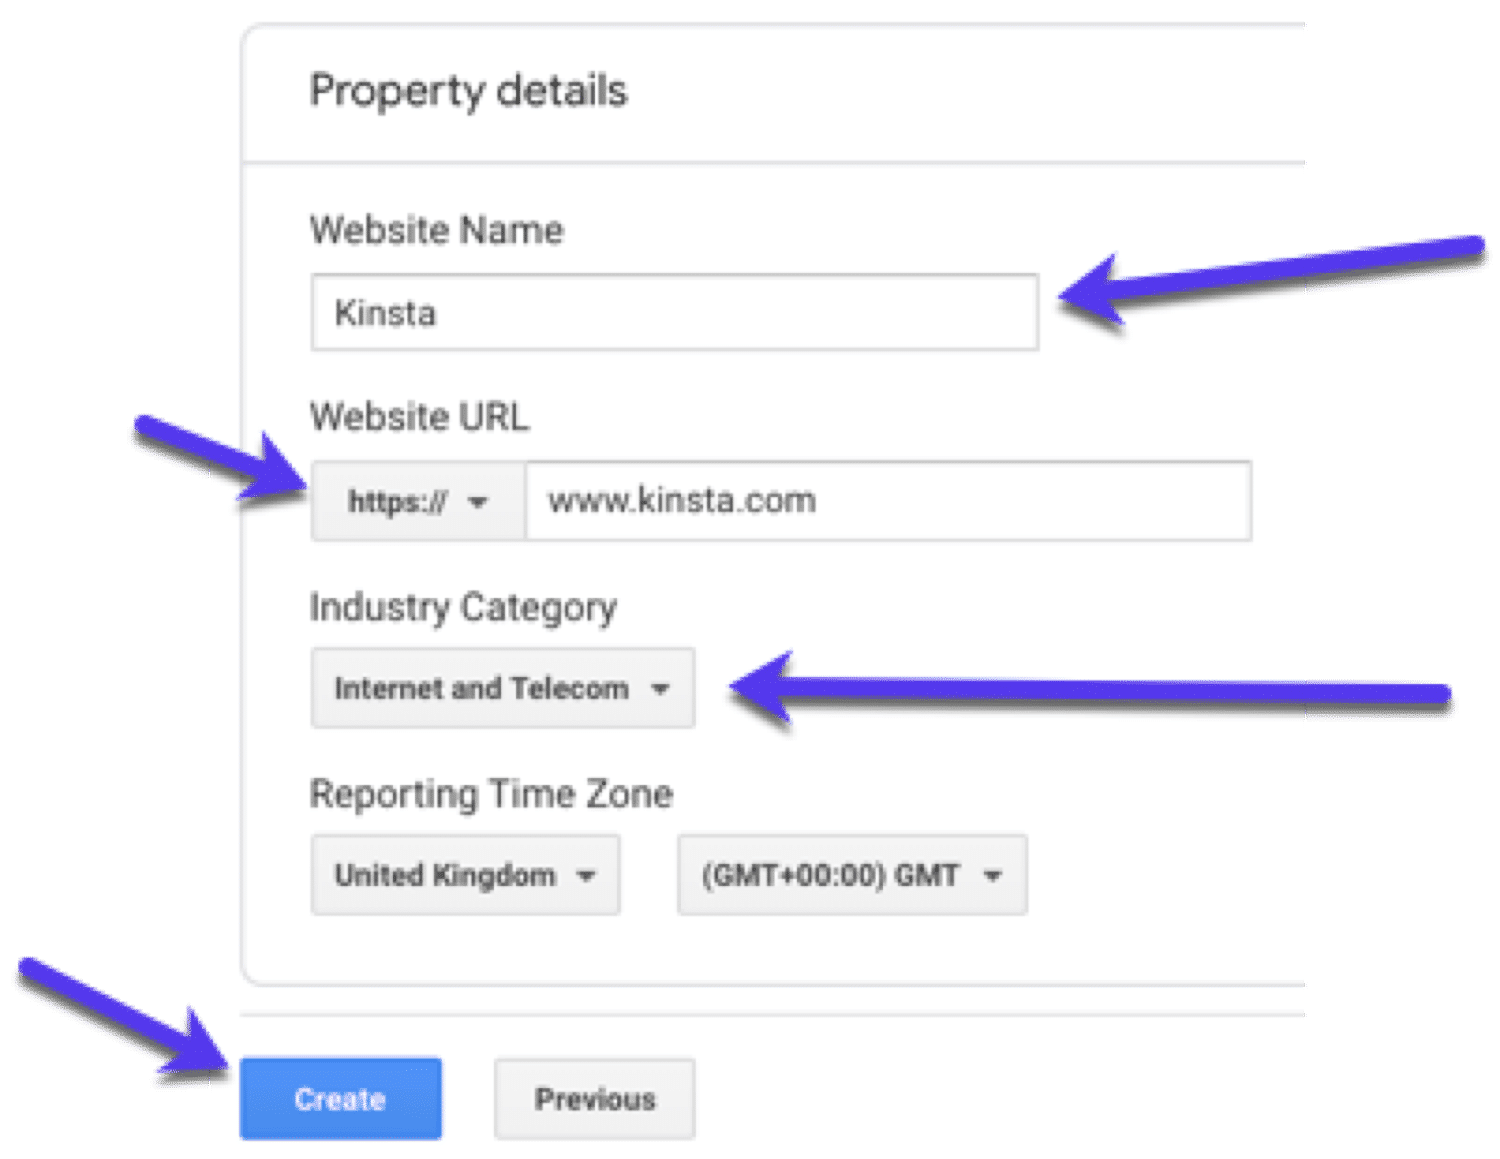 How to use Google Analytics: add information about your site in Google Analytics